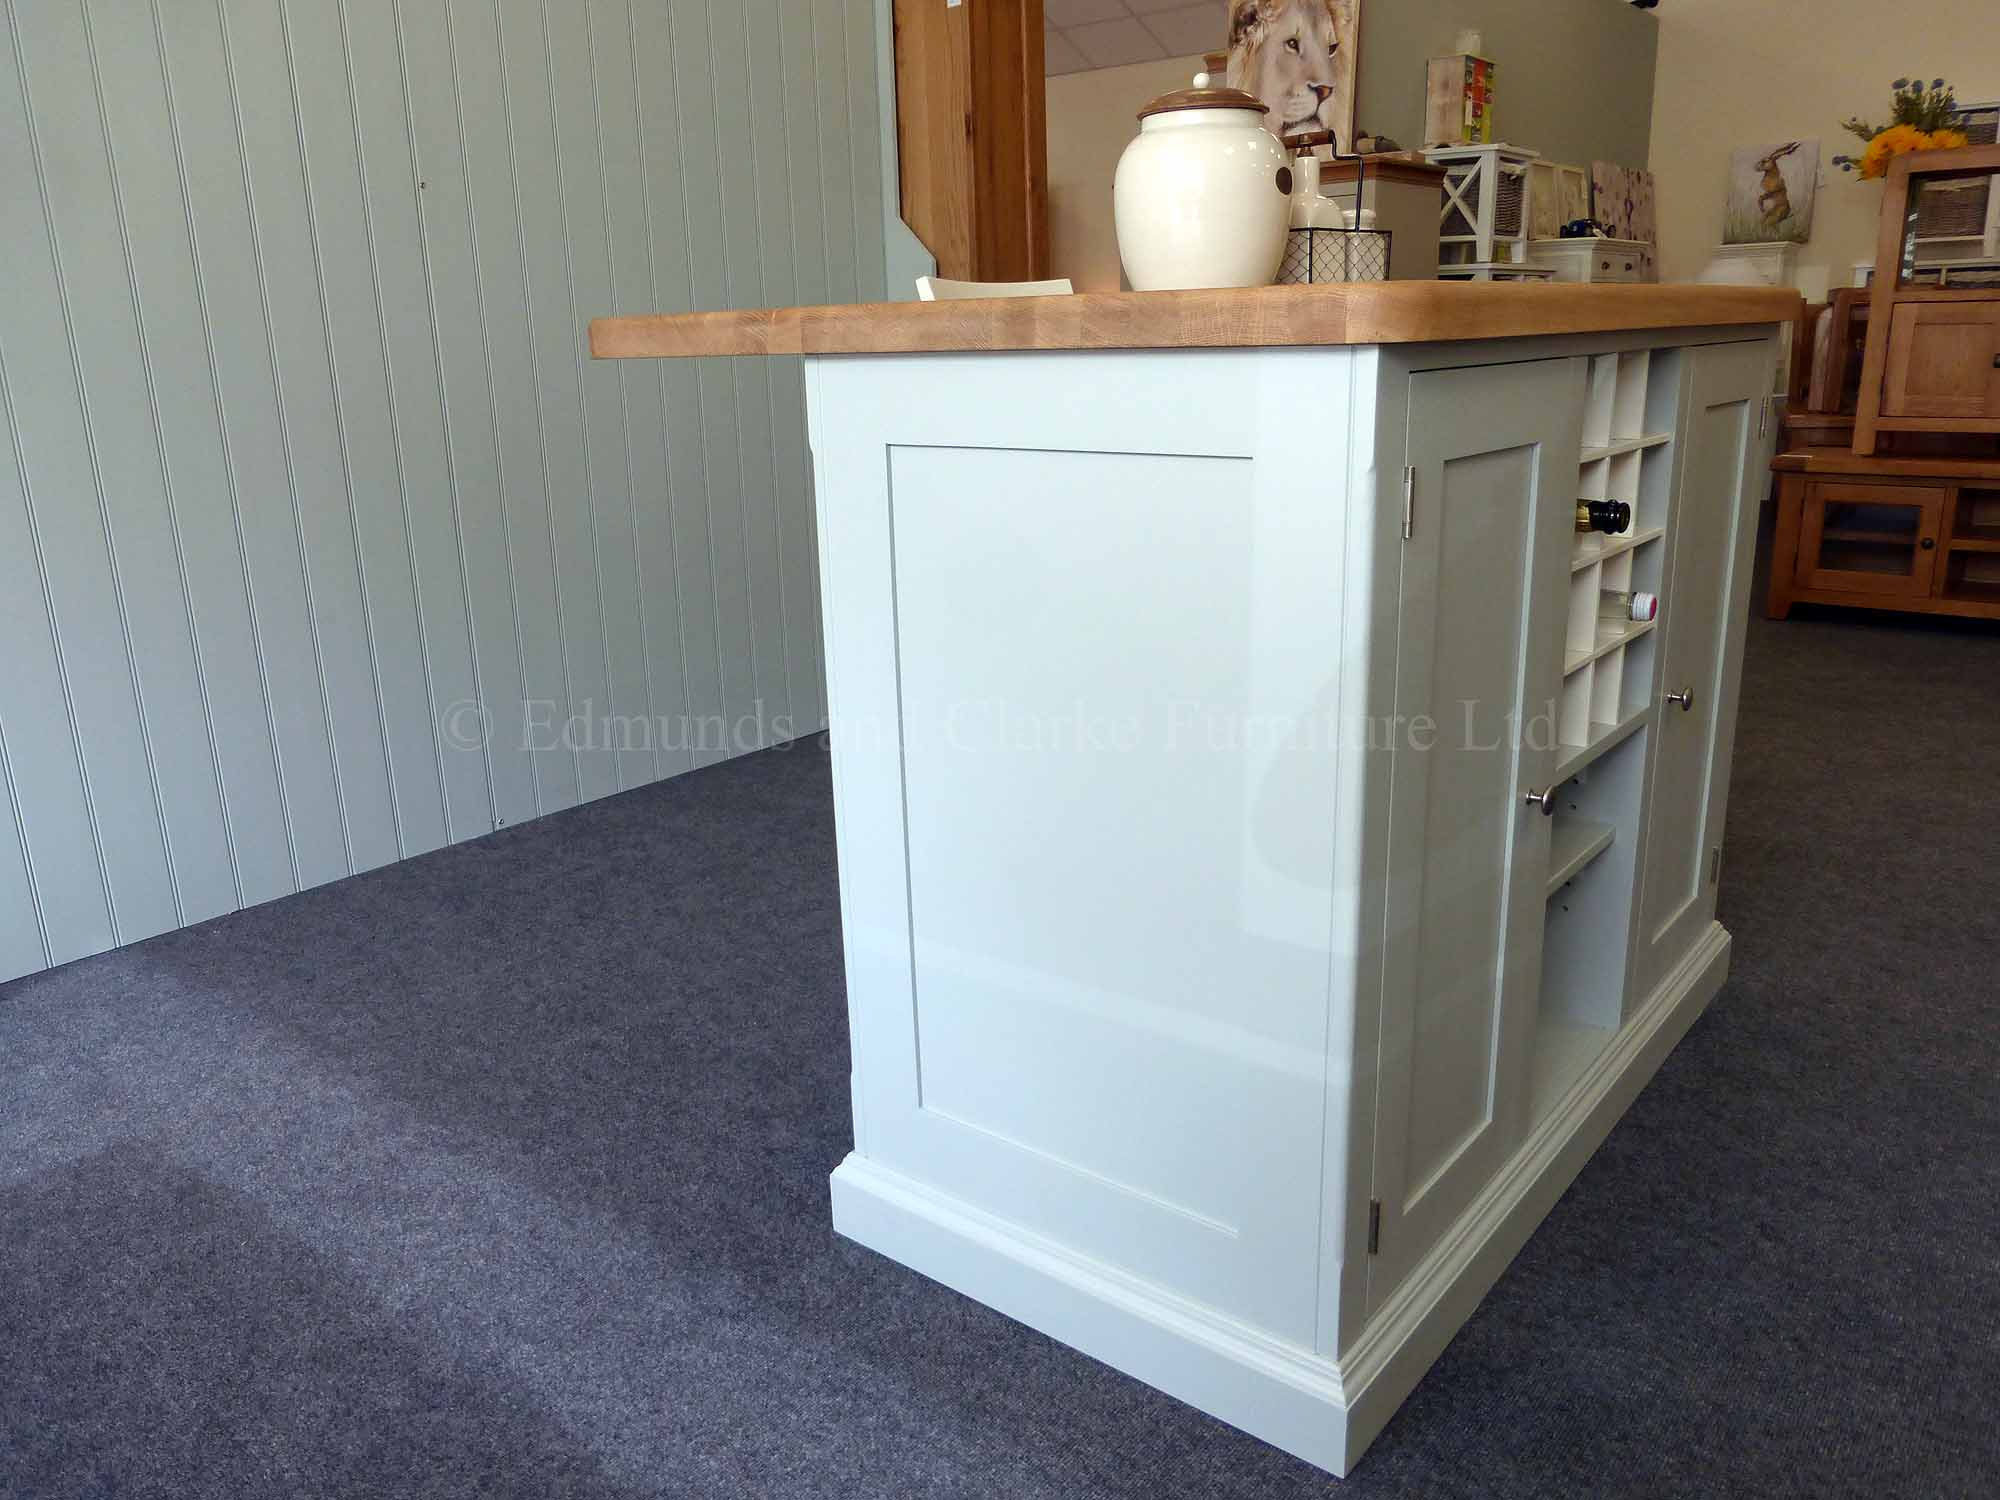 Edmunds painted 4ft x 3ft kitchen Island in Southwold Sky Blue. Solid oak top. Central shelves and wine rack with 2 paneled doors and on other side a overhang for stools. EDM008